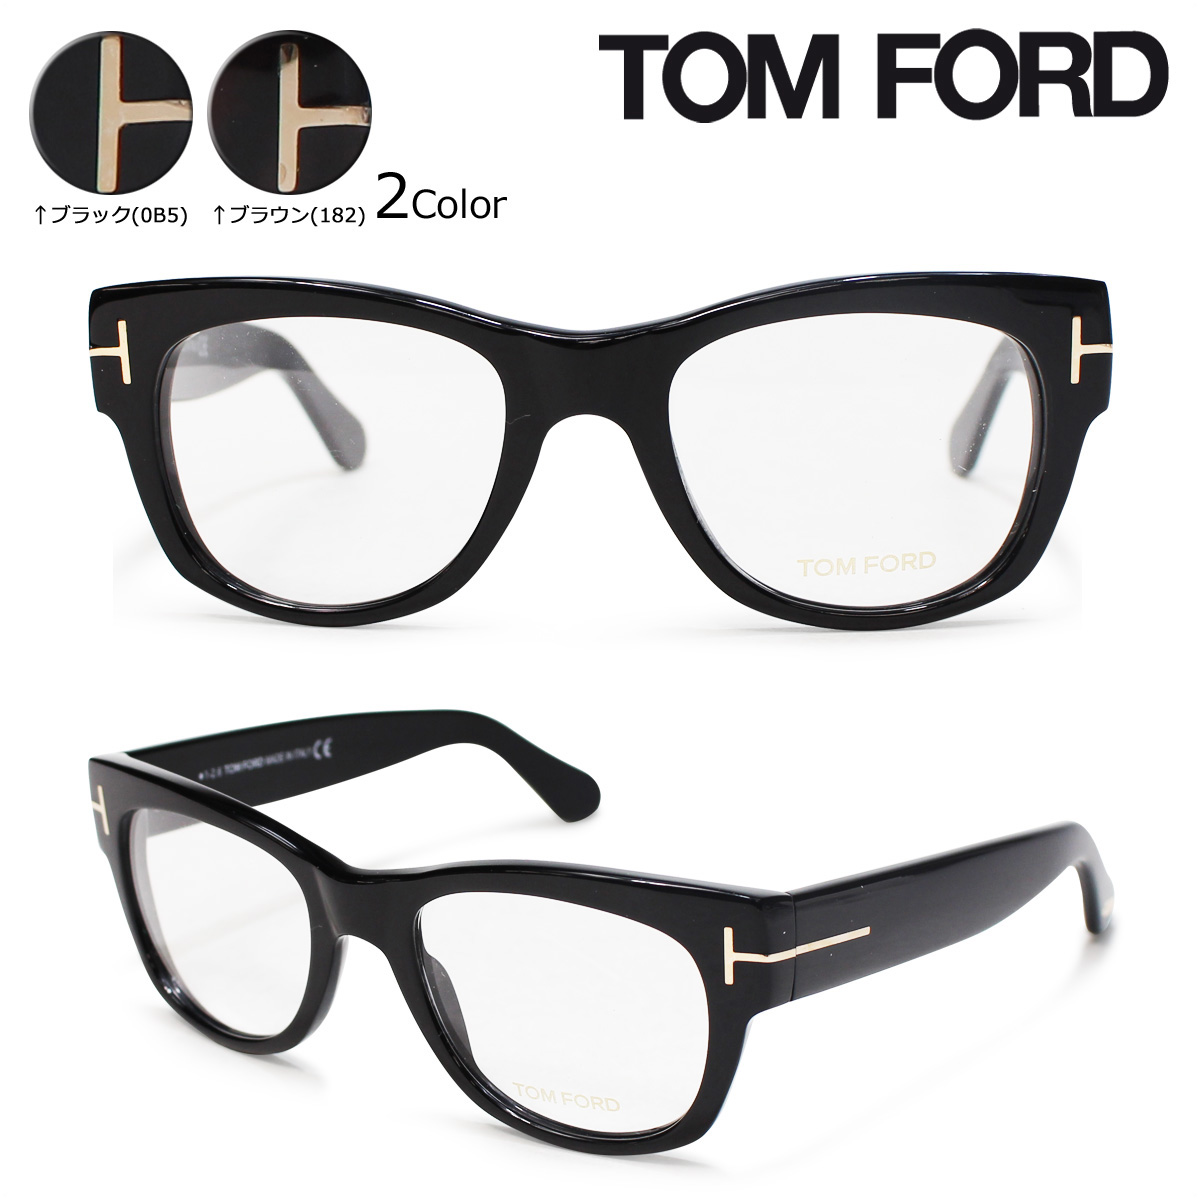 f8693e72c0 Sugar Online Shop  Product made in Tom Ford glasses TOM FORD men gap ...